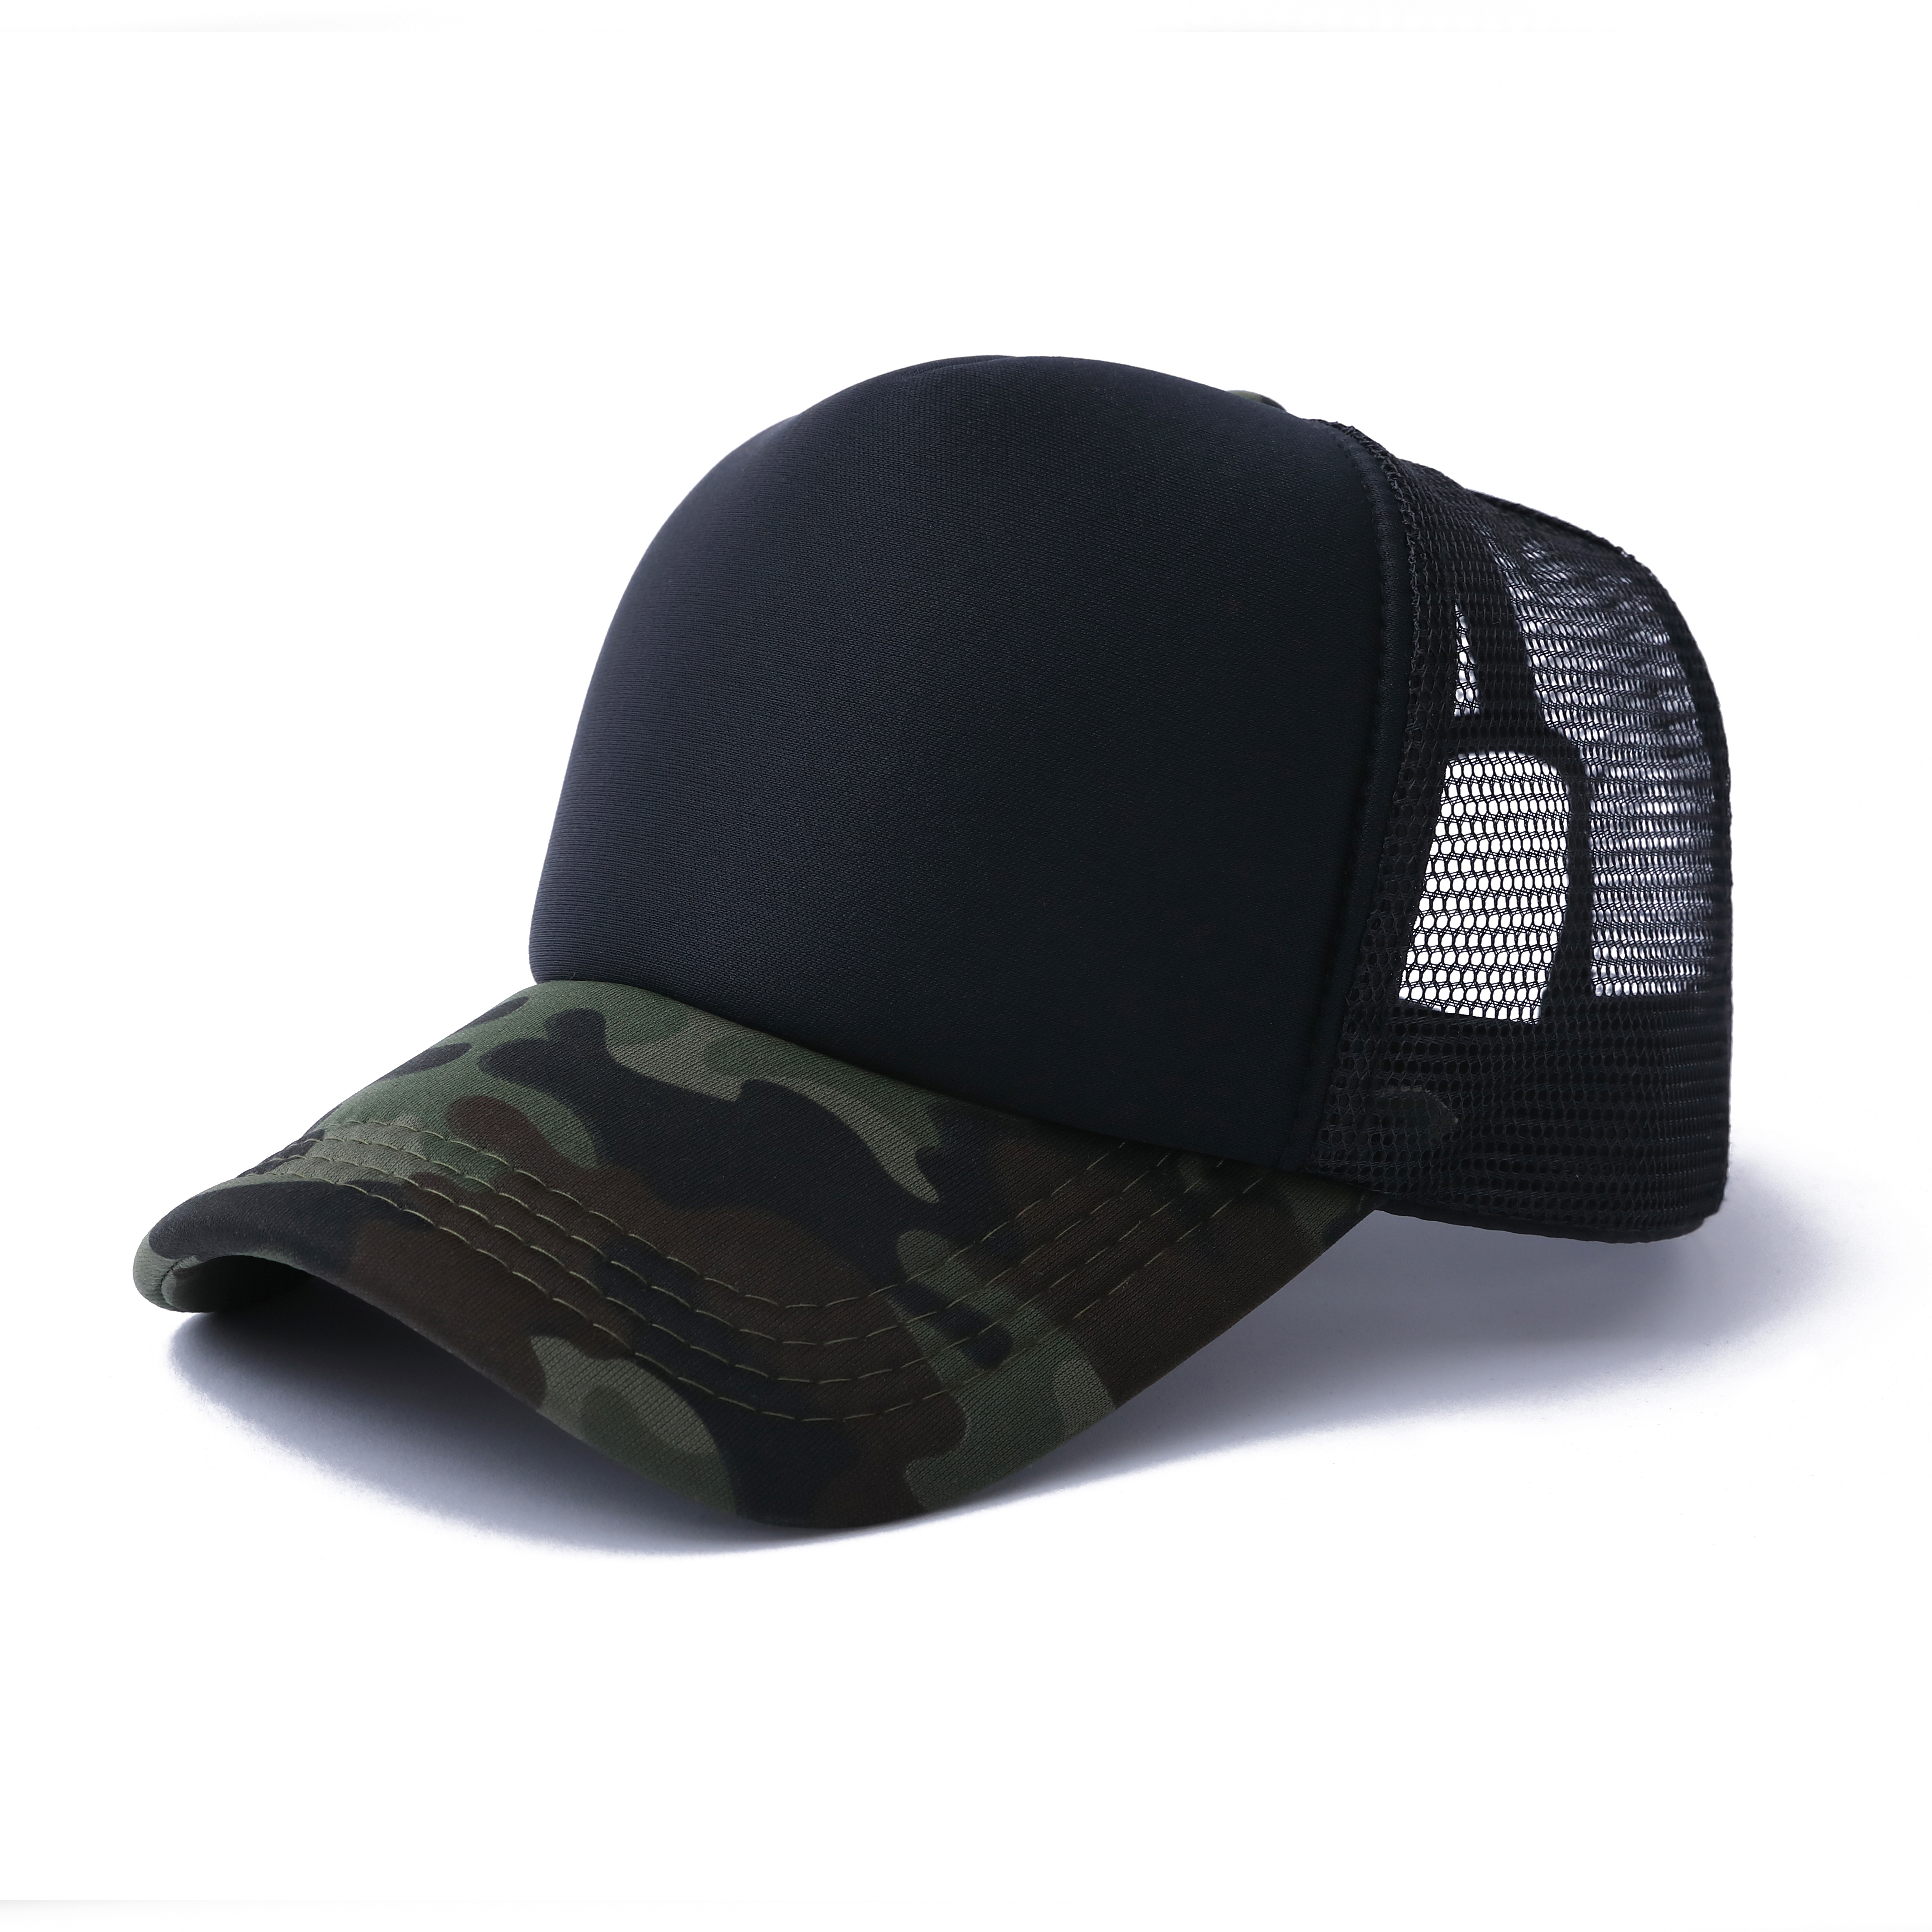 923d51df2e016 Opentip.com  Opromo Camo Curve Bill Mesh Back Summer Trucker Cap Adjustable  Snapback Hat